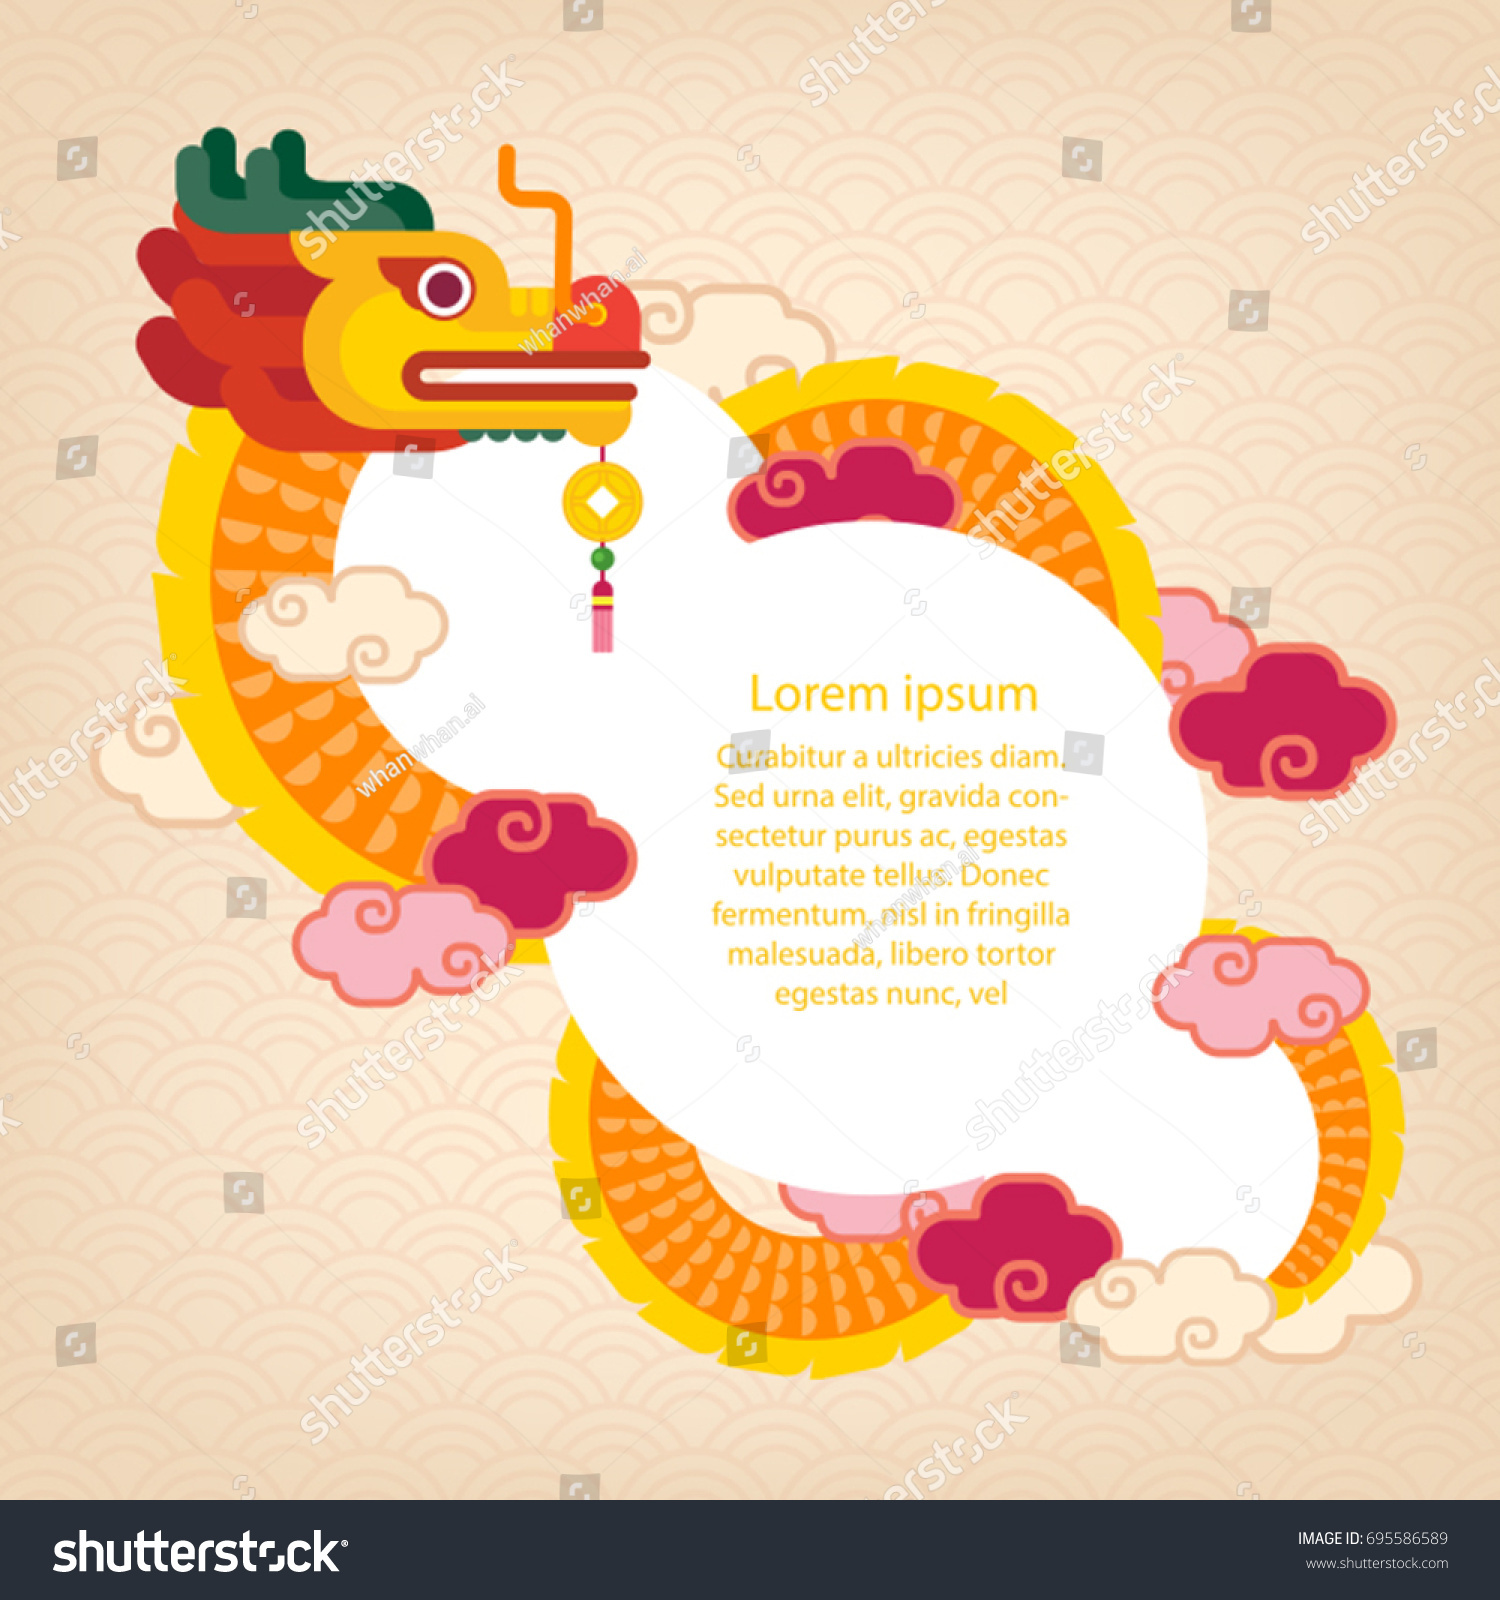 100 image of chinese dragon chinese dragon dance stock